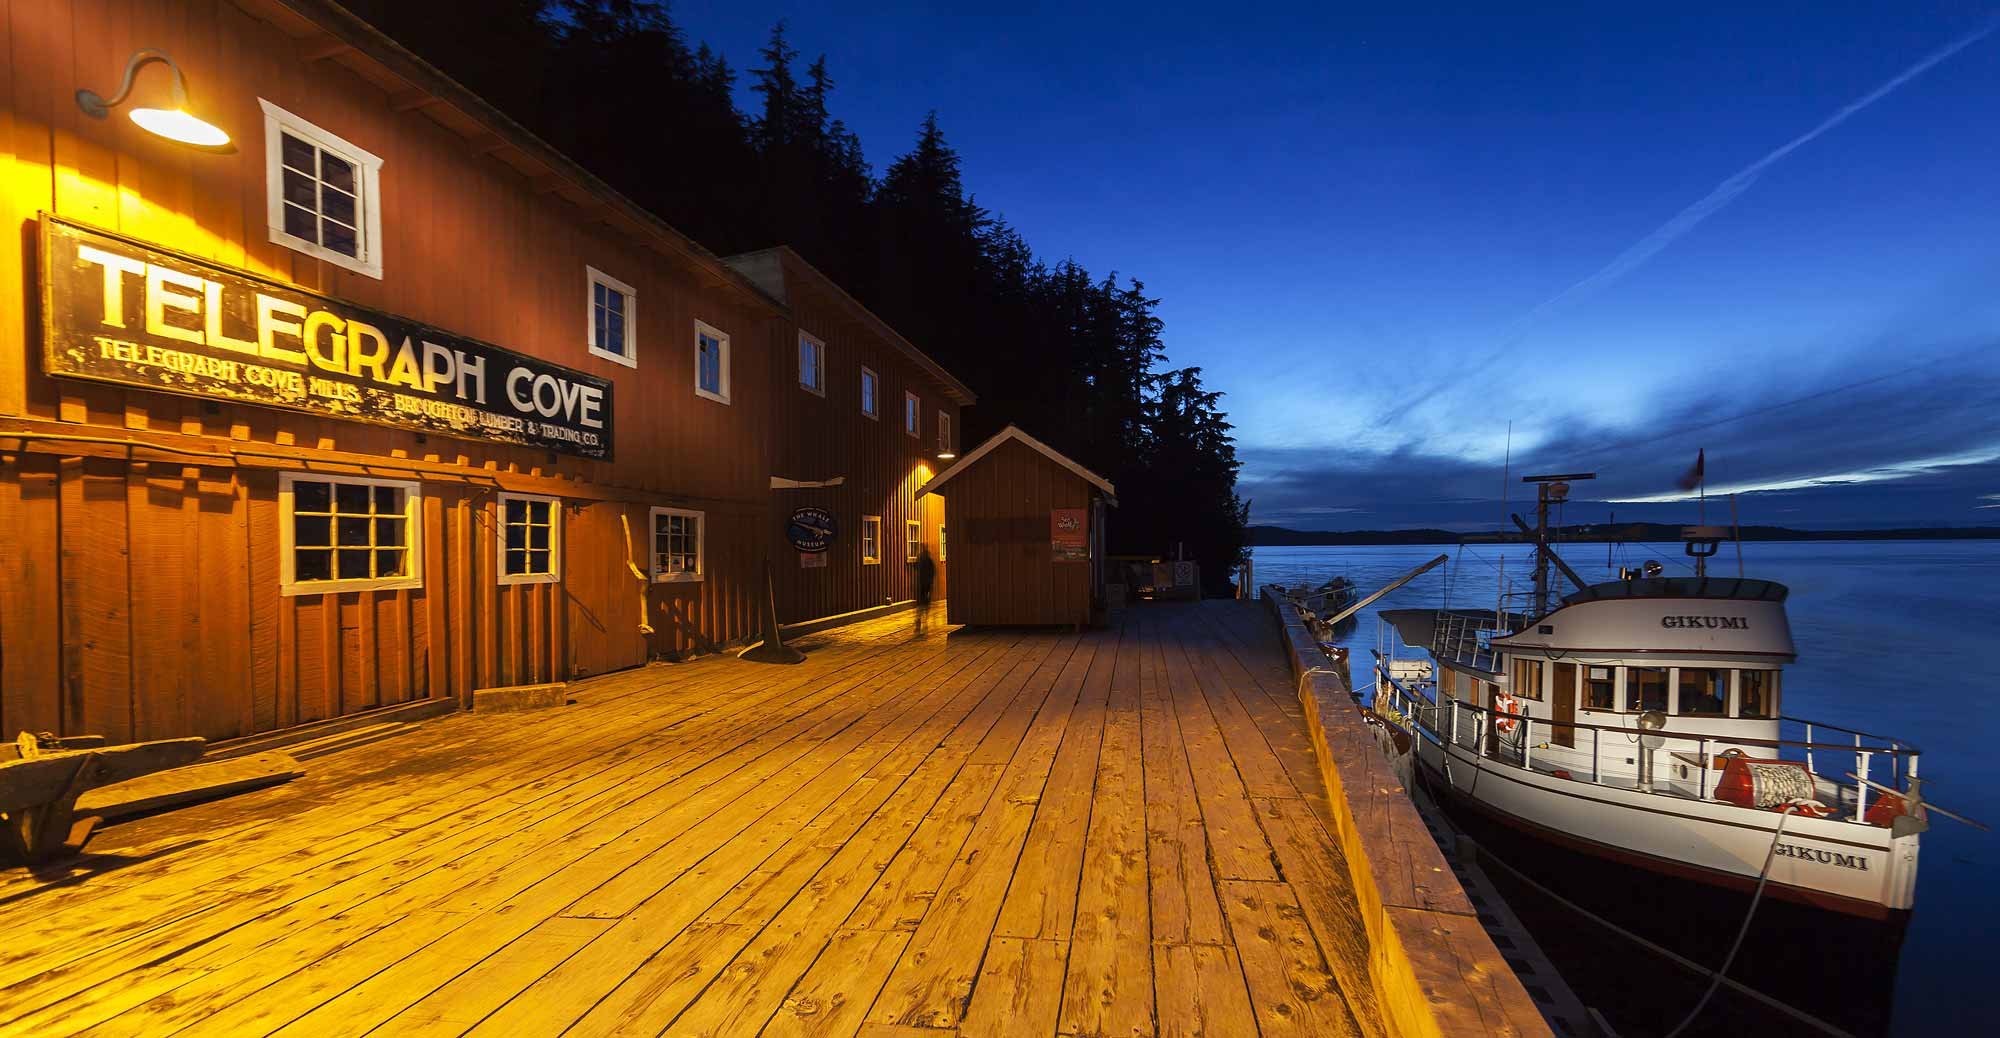 The Historic Whale Museum building and the origianl whale watching boat, the Gikumi at Telegraph Cove add to the appeal of this popular tourist destination.